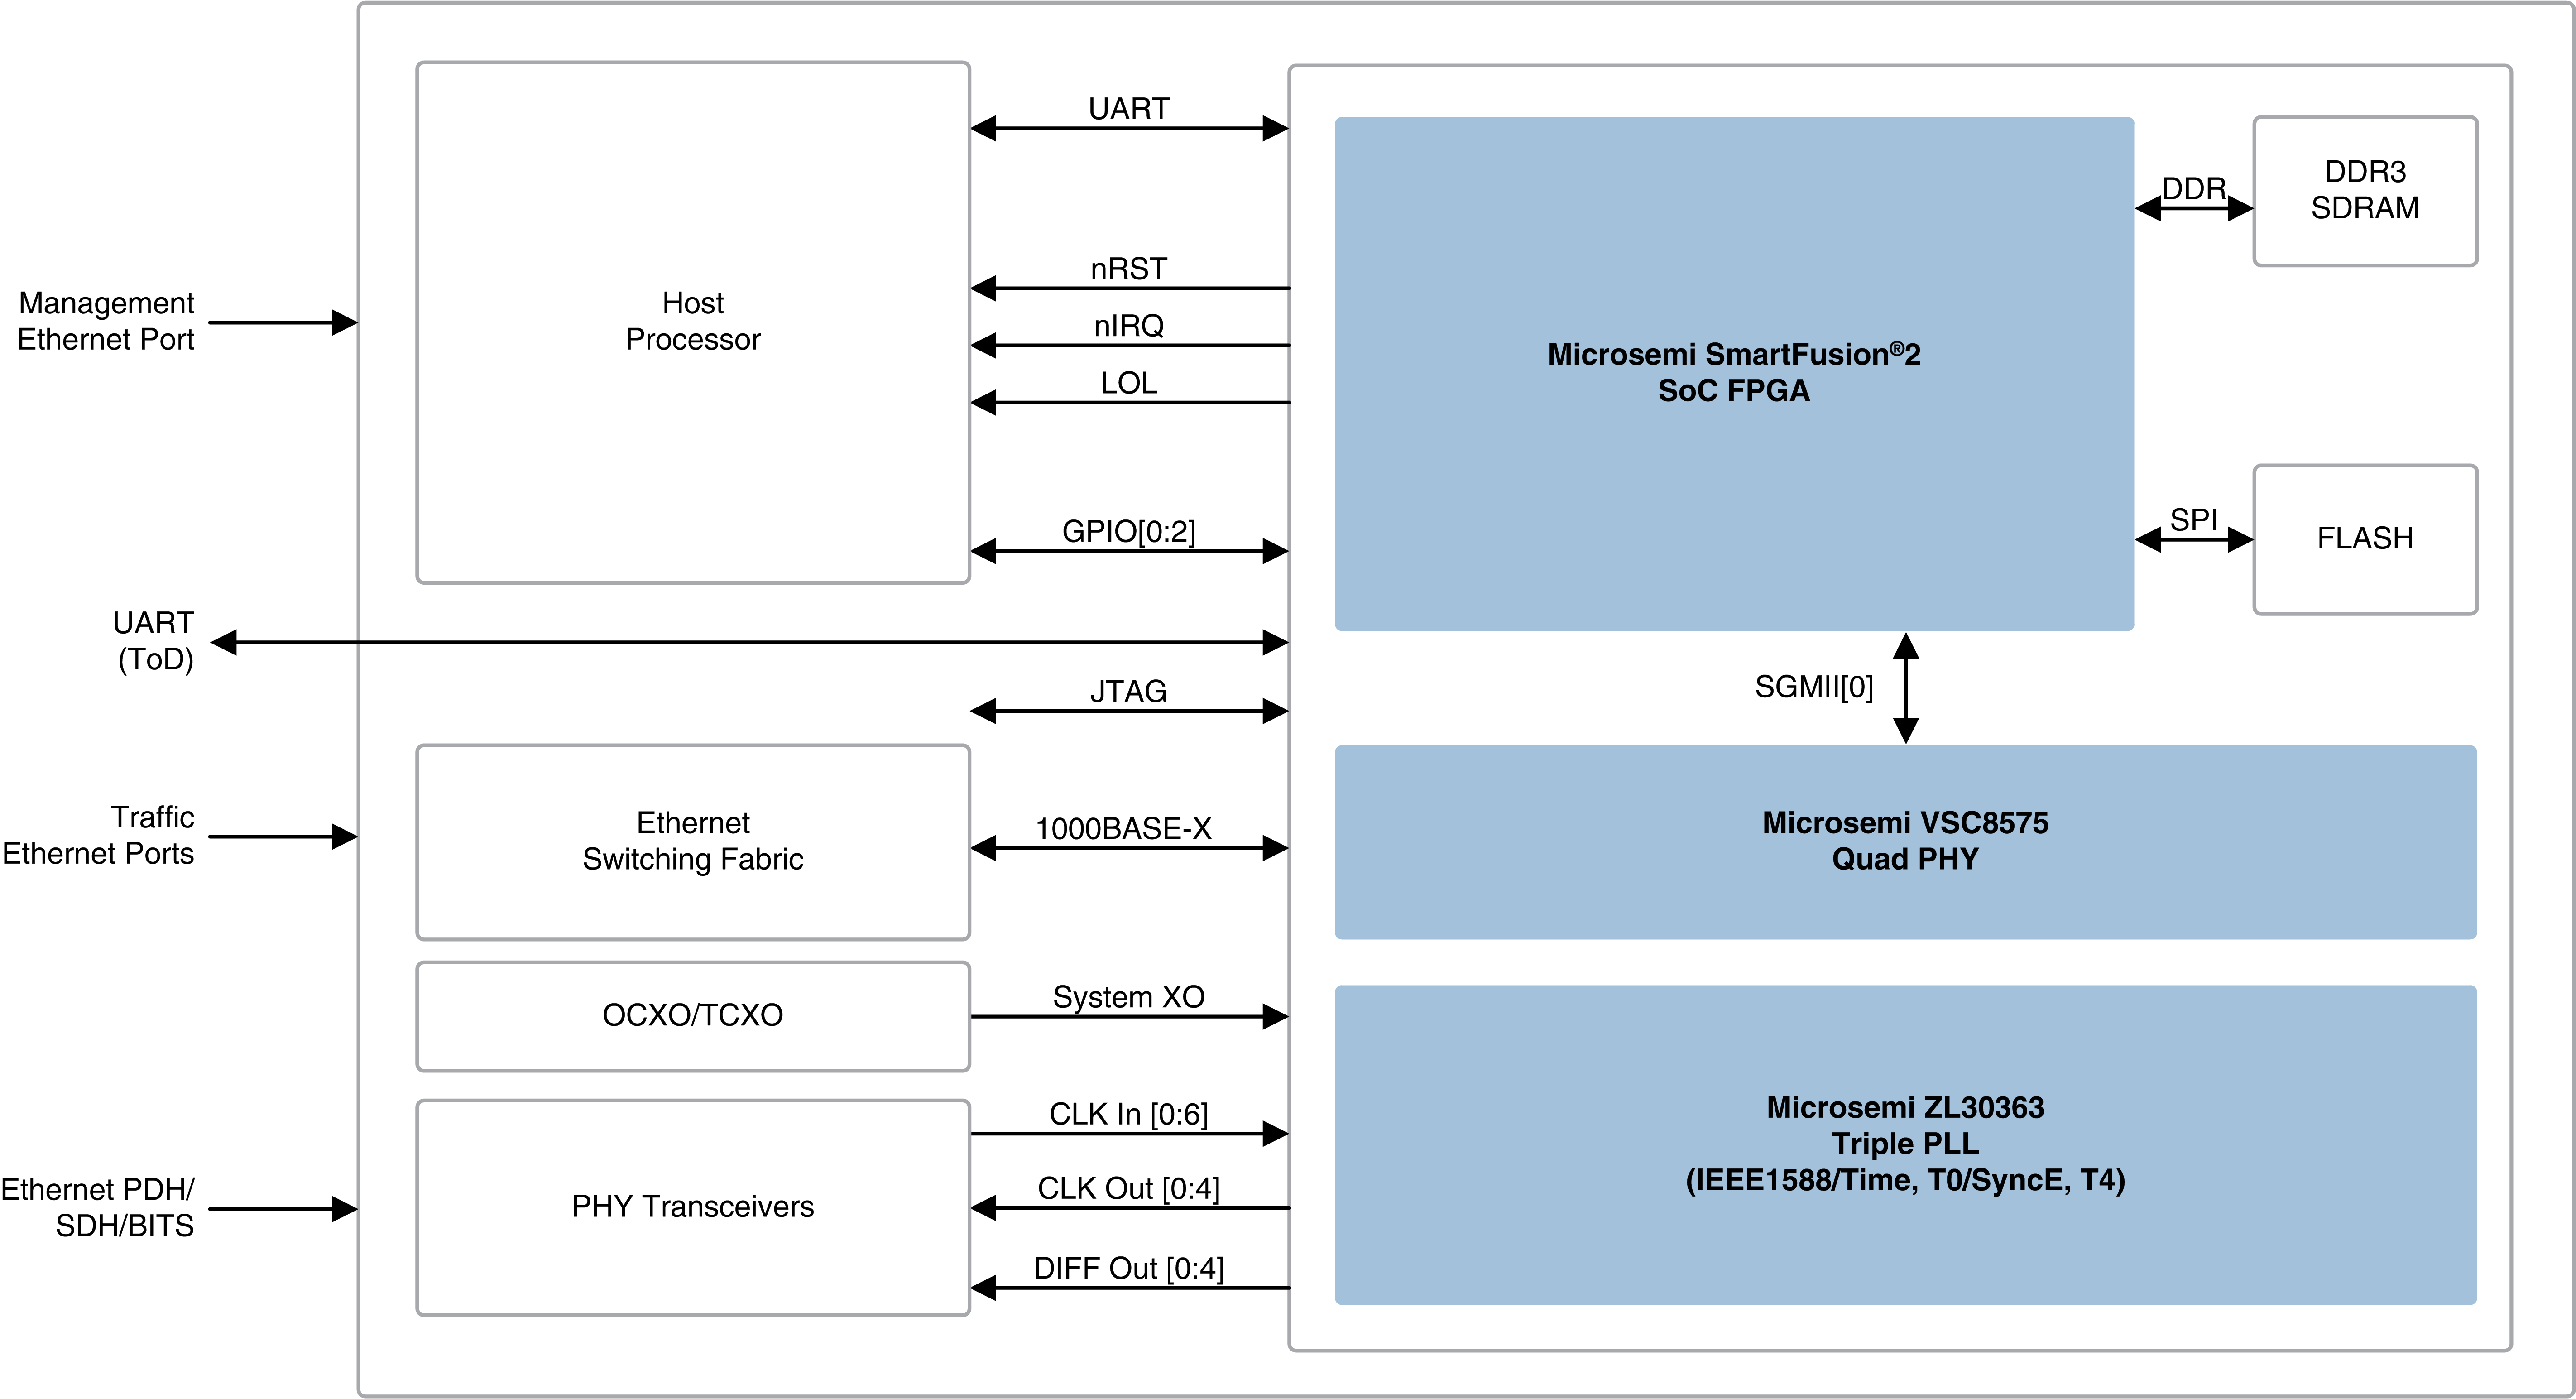 Mscc 1588 Db Microsemi Details About Lock Instrumentatio N Timer Mk2 Circuit Board Example Of Ieee Timing Synchronization Module In Centralized Architecture